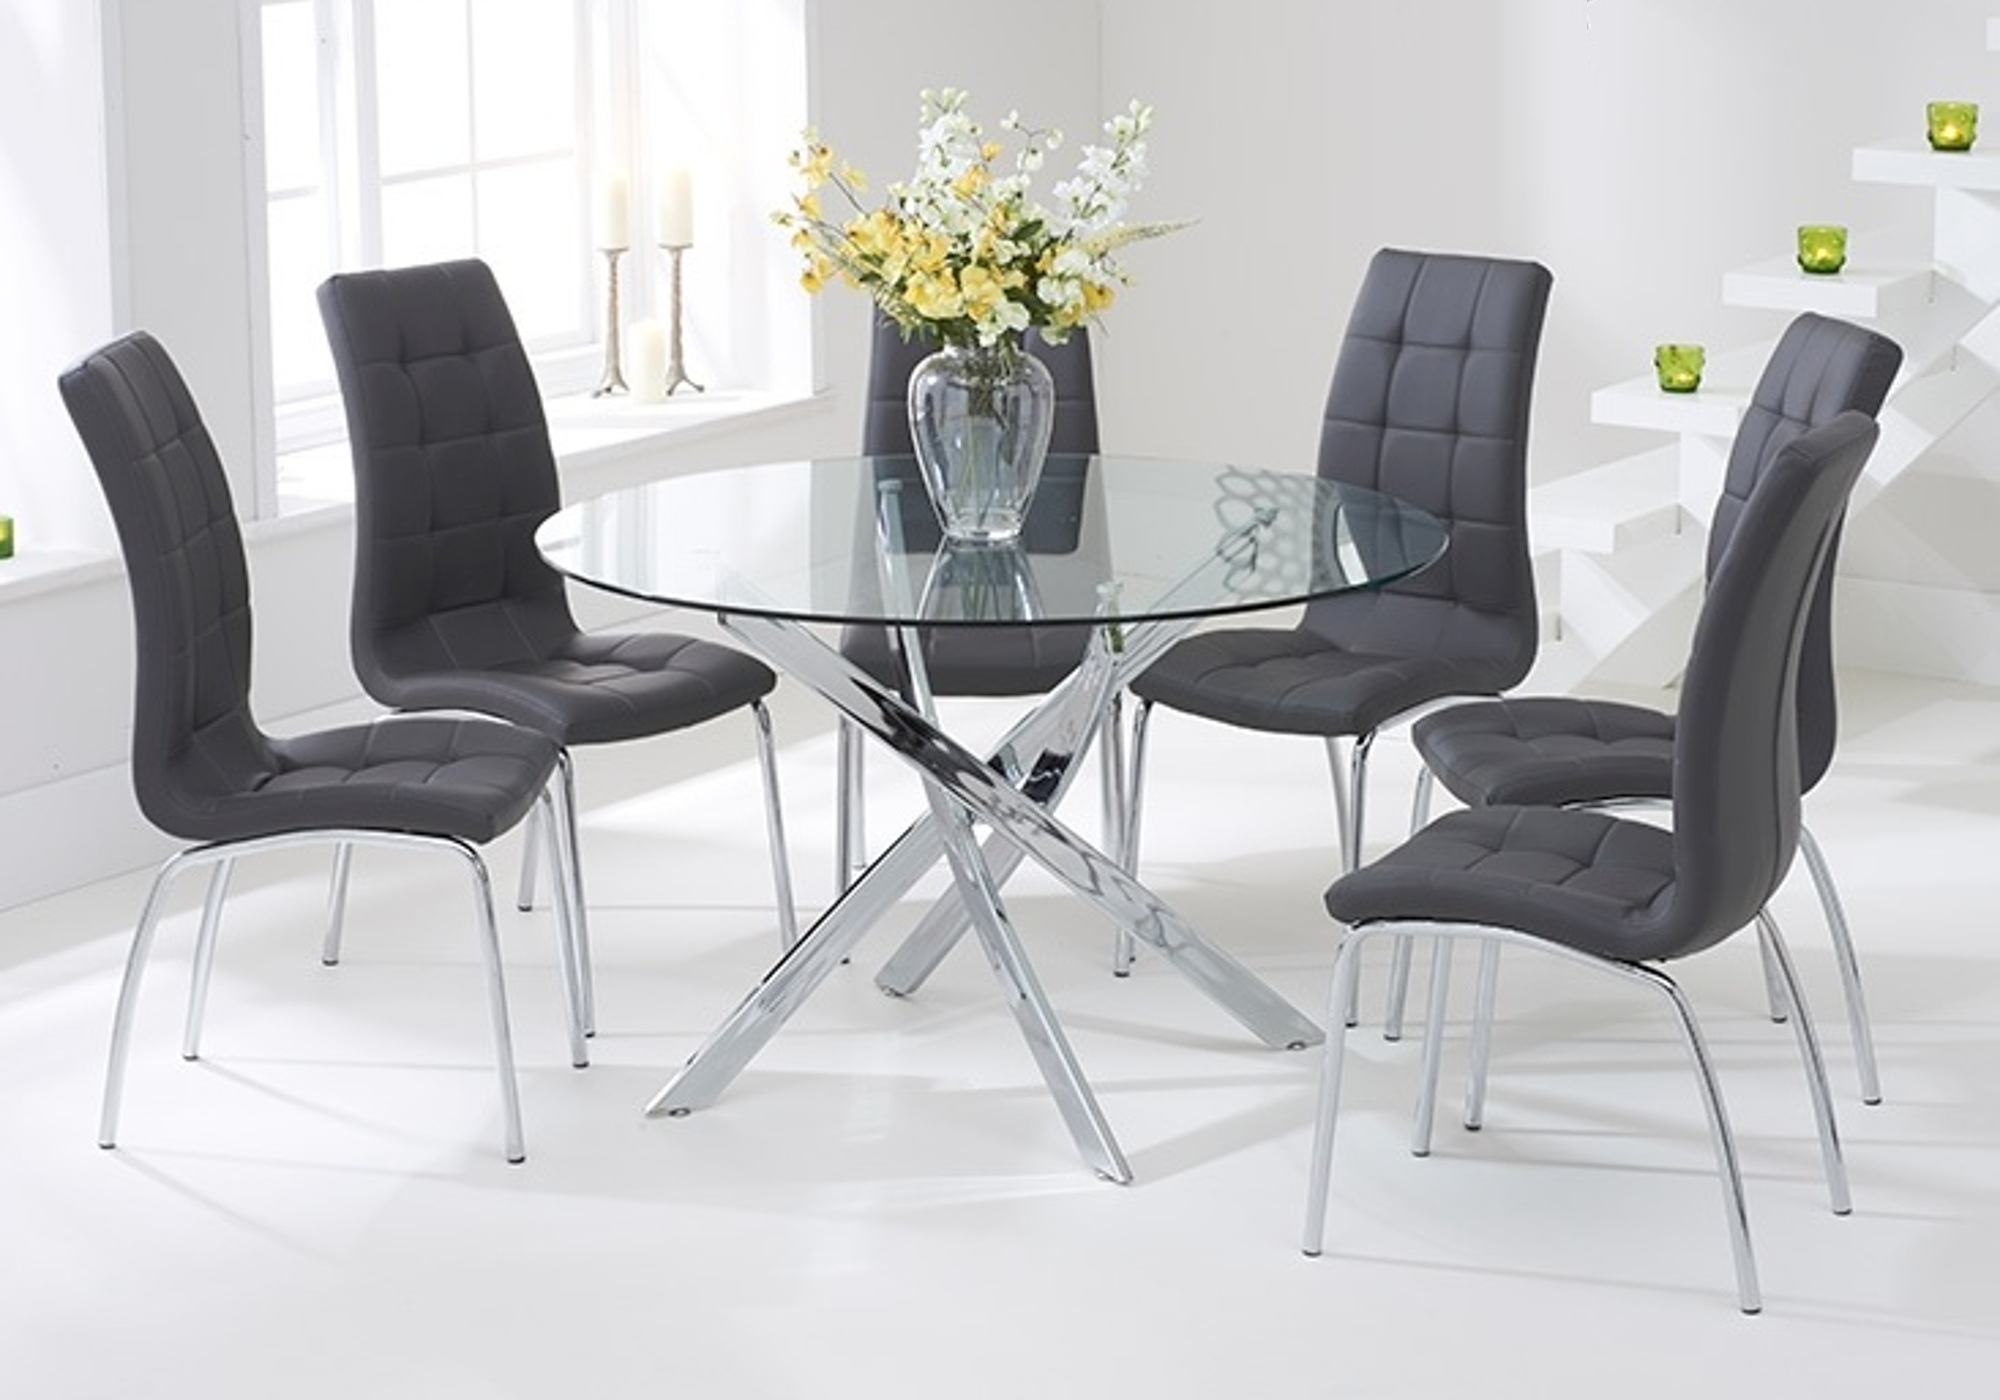 Table chromé 6 chaises grises DESIGN